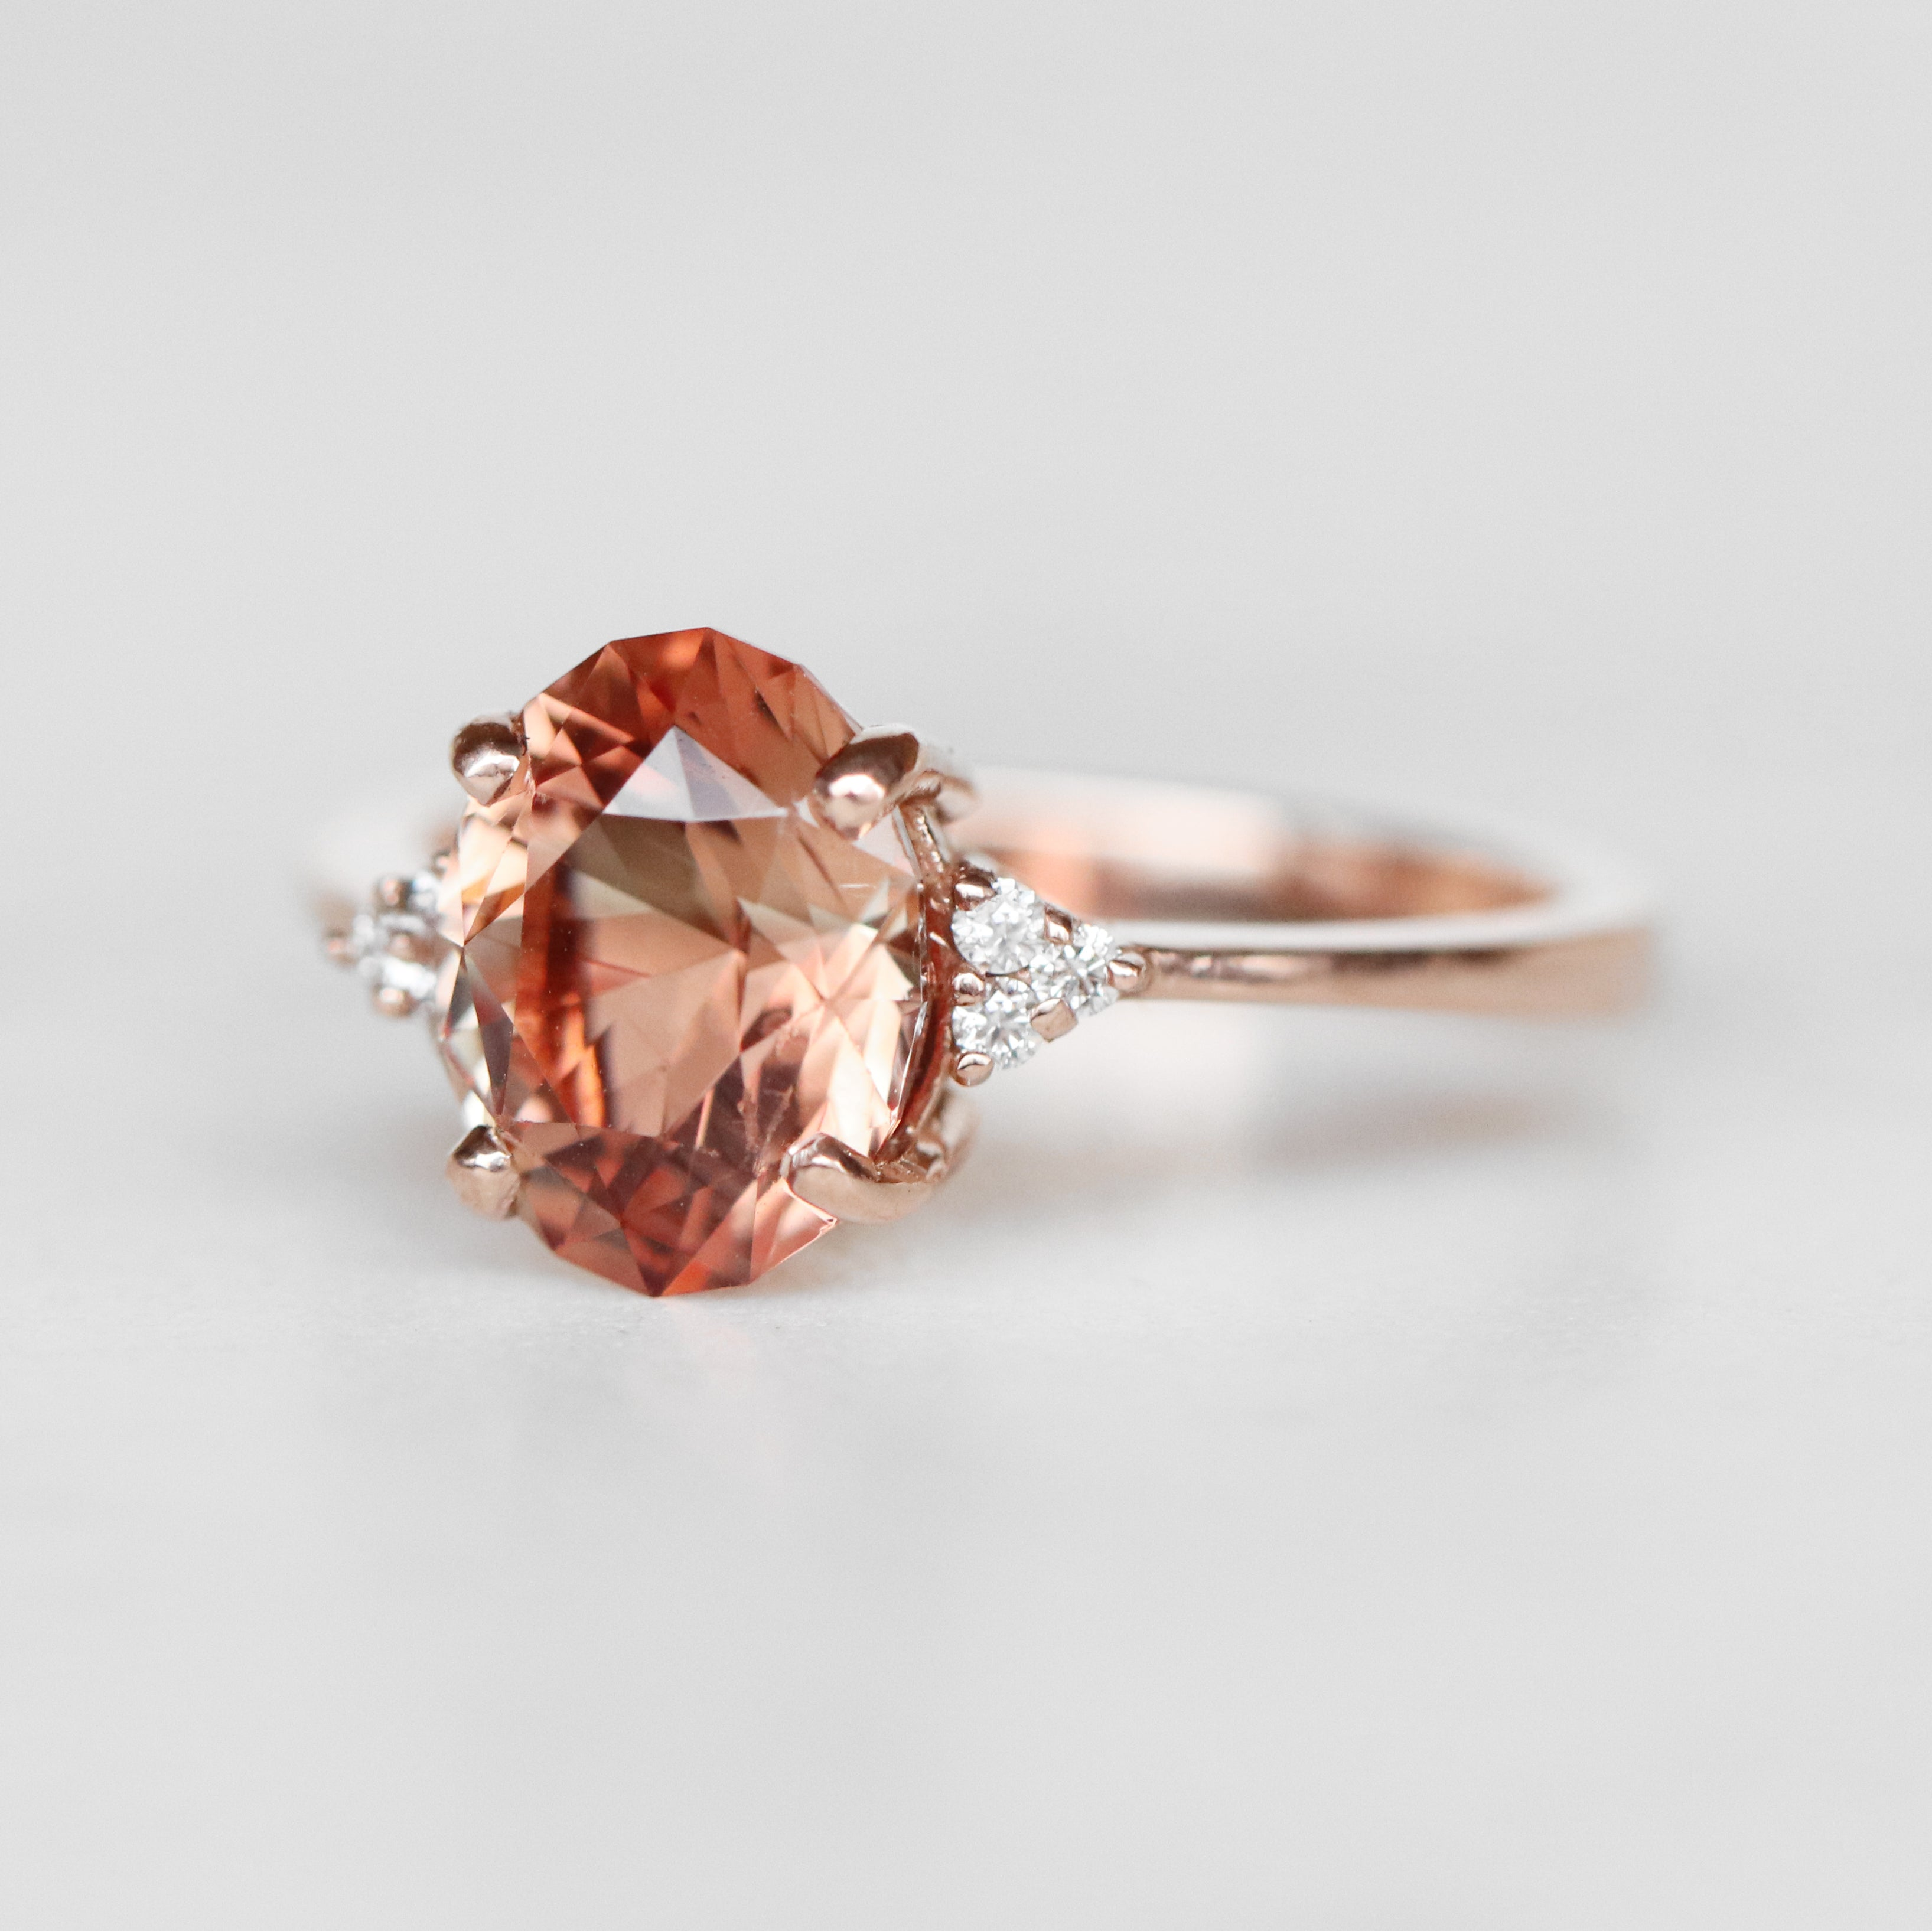 Imogene Ring with a 2.37 Carat Oval Sunstone and Clear Diamond Accents in 14k Rose Gold - Ready to Size and Ship - Salt & Pepper Celestial Diamond Engagement Rings and Wedding Bands  by Midwinter Co.